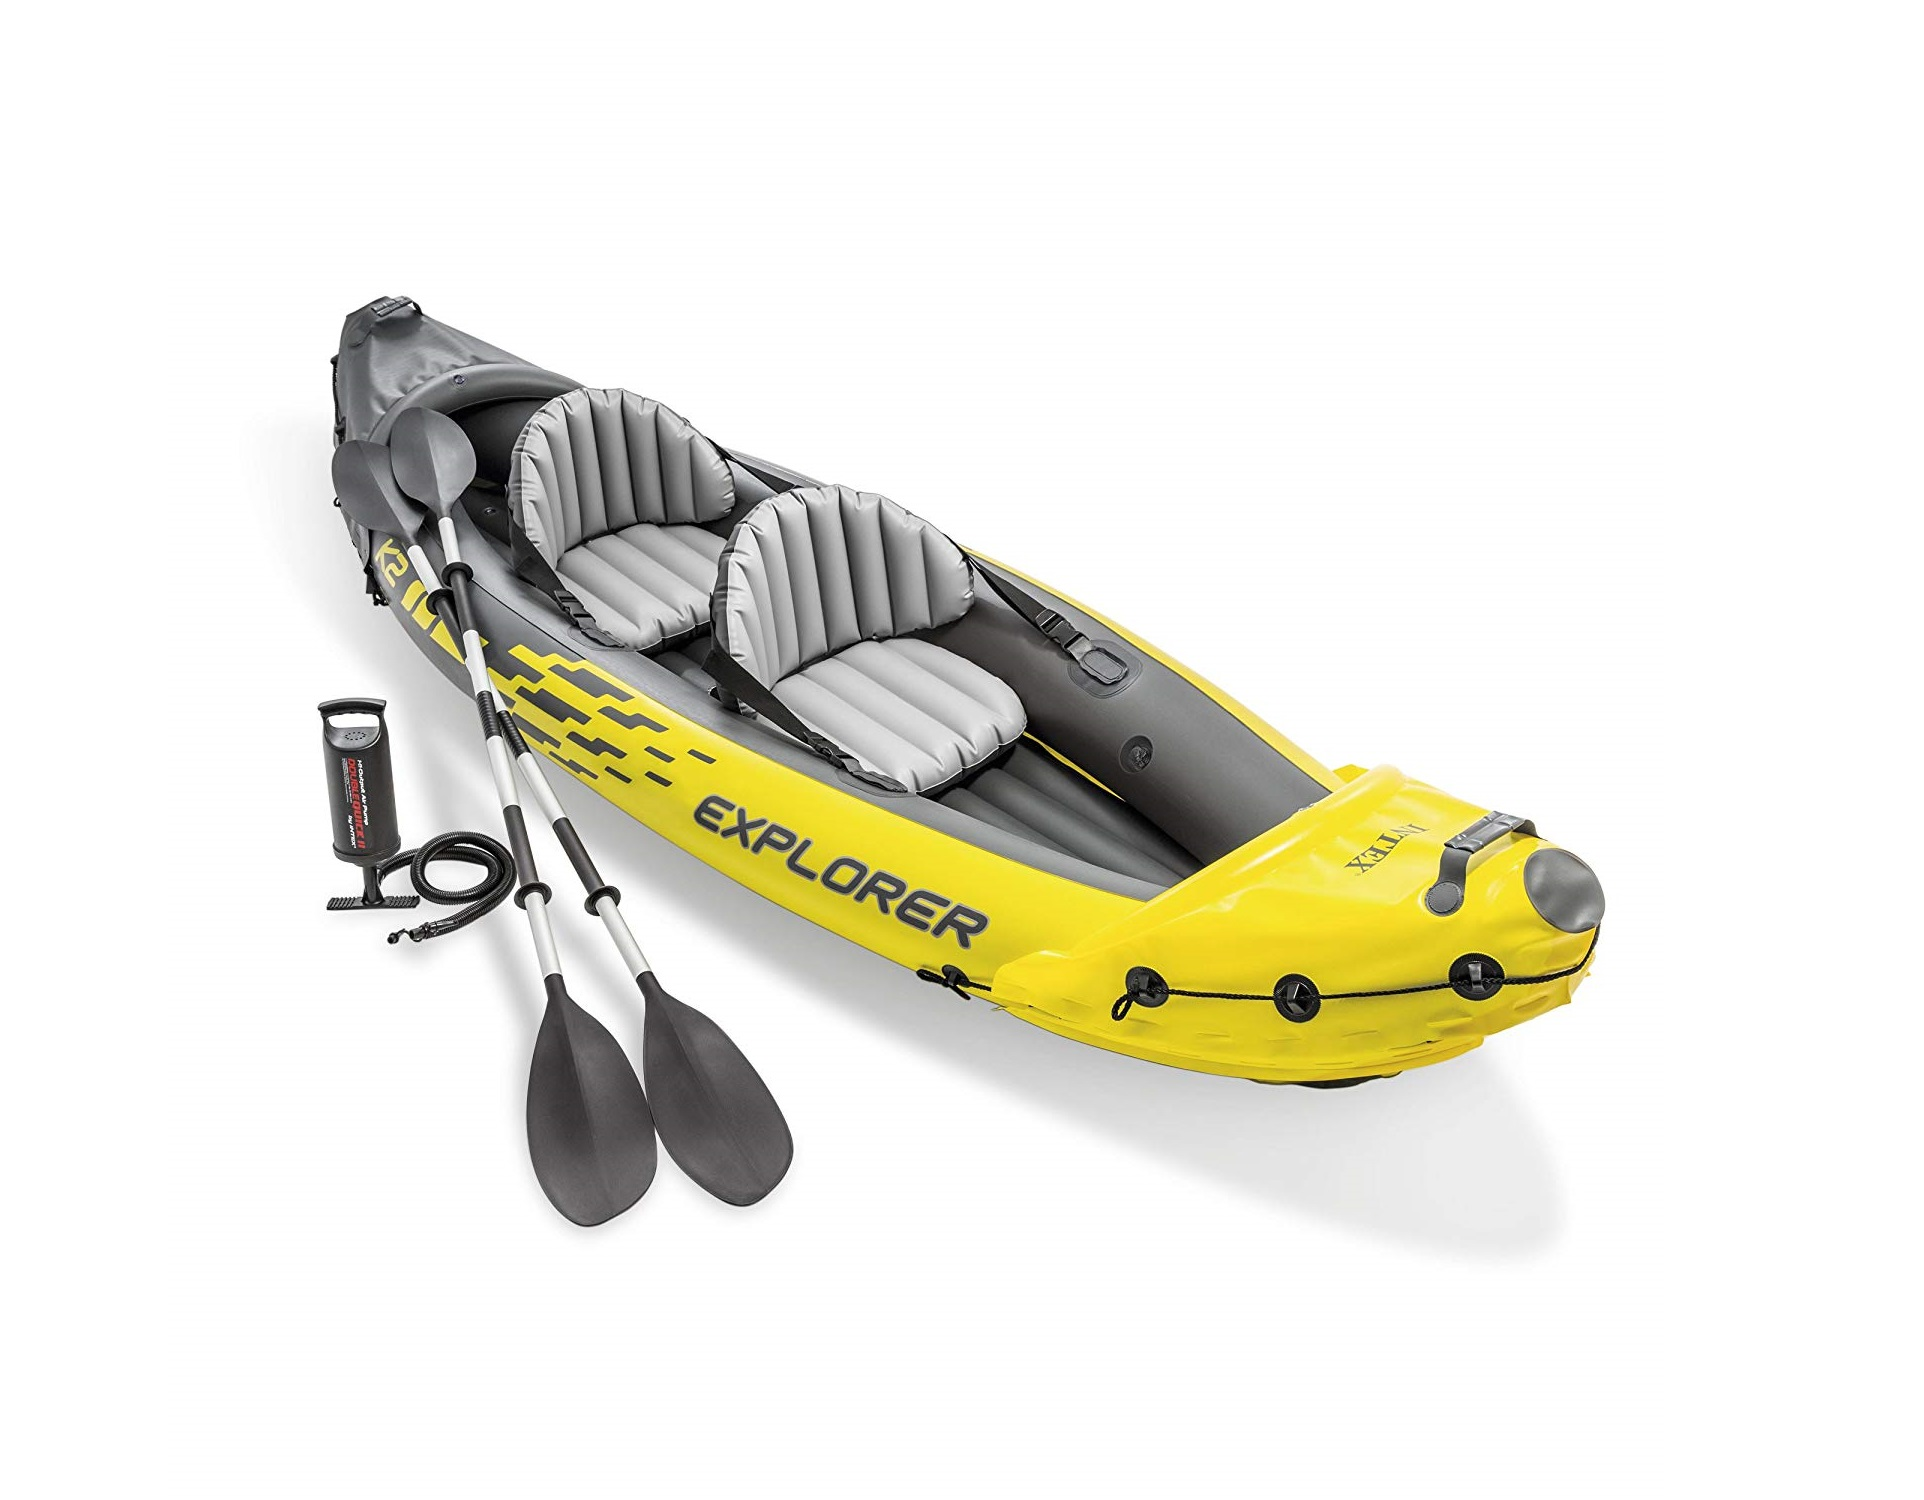 TOP 5 BEST CHEAP KAYAKS FOR SALE UNDER $200 IN 2020 REVIEWS